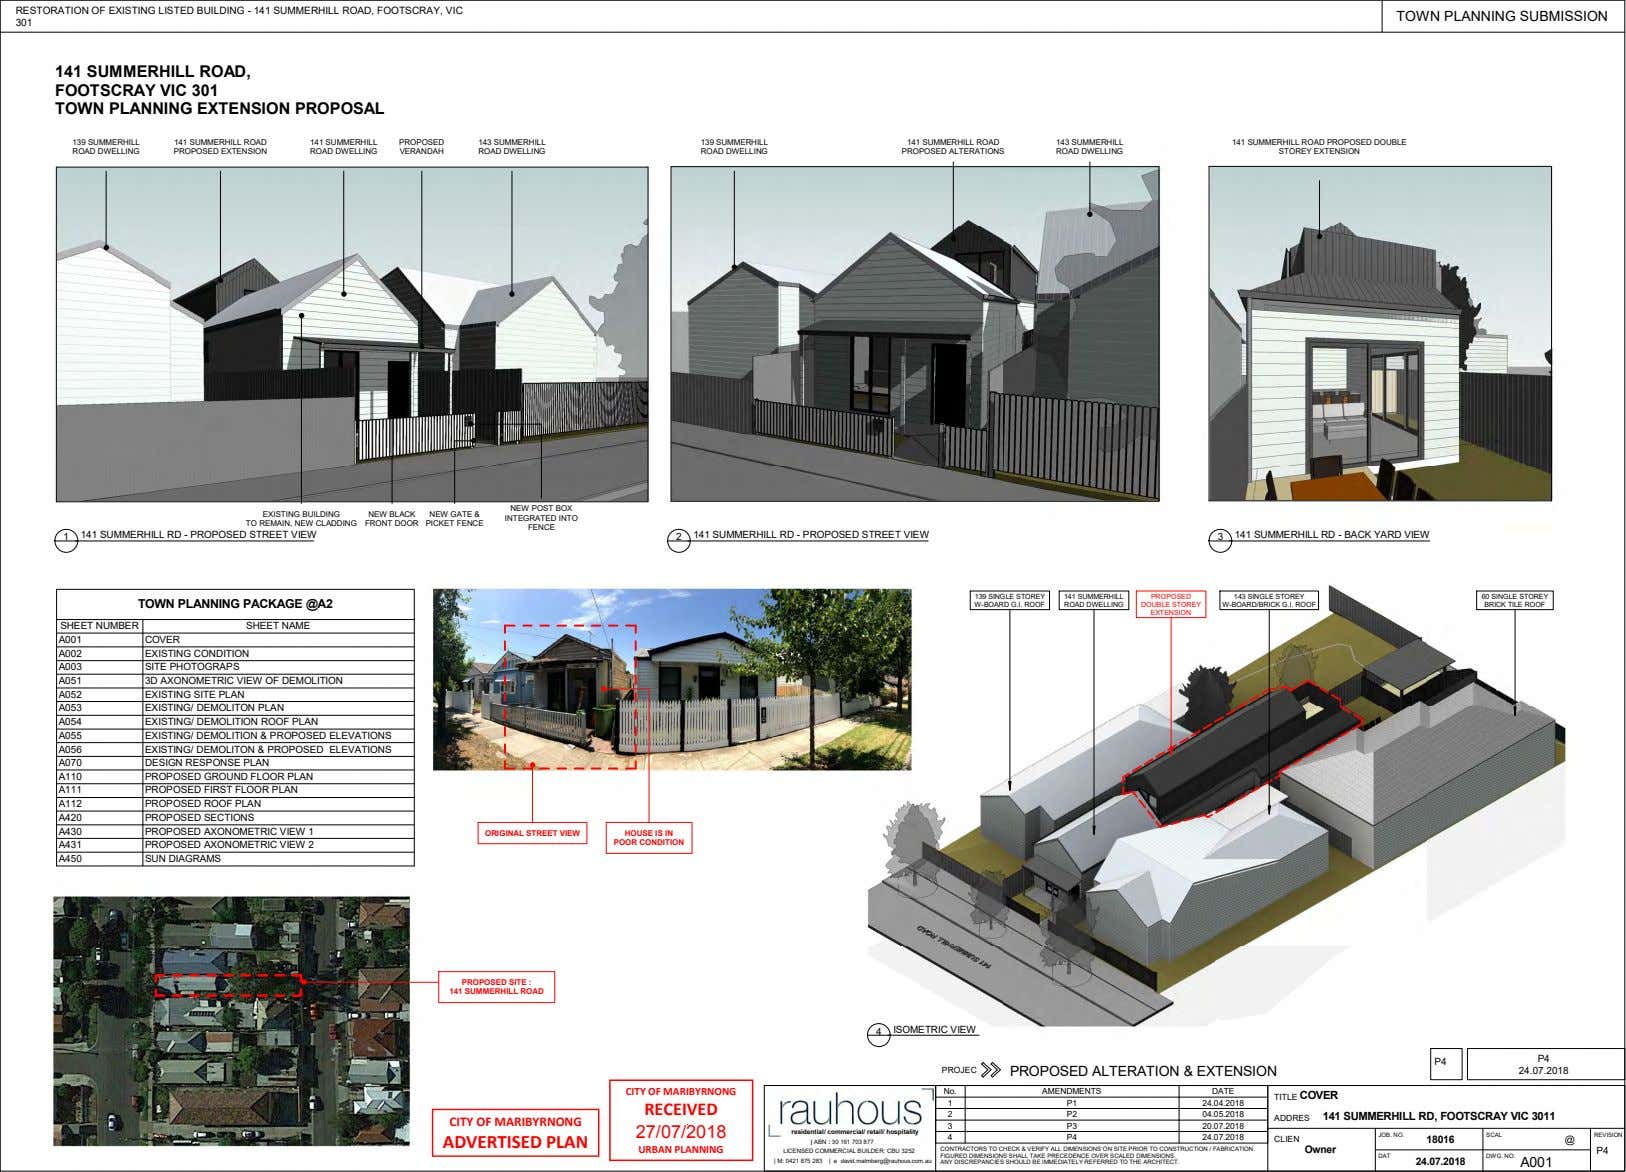 RESTORATION OF EXISTING LISTED BUILDING - 141 SUMMERHILL ROAD, FOOTSCRAY, VIC TOWN PLANNING SUBMISSION 301 141